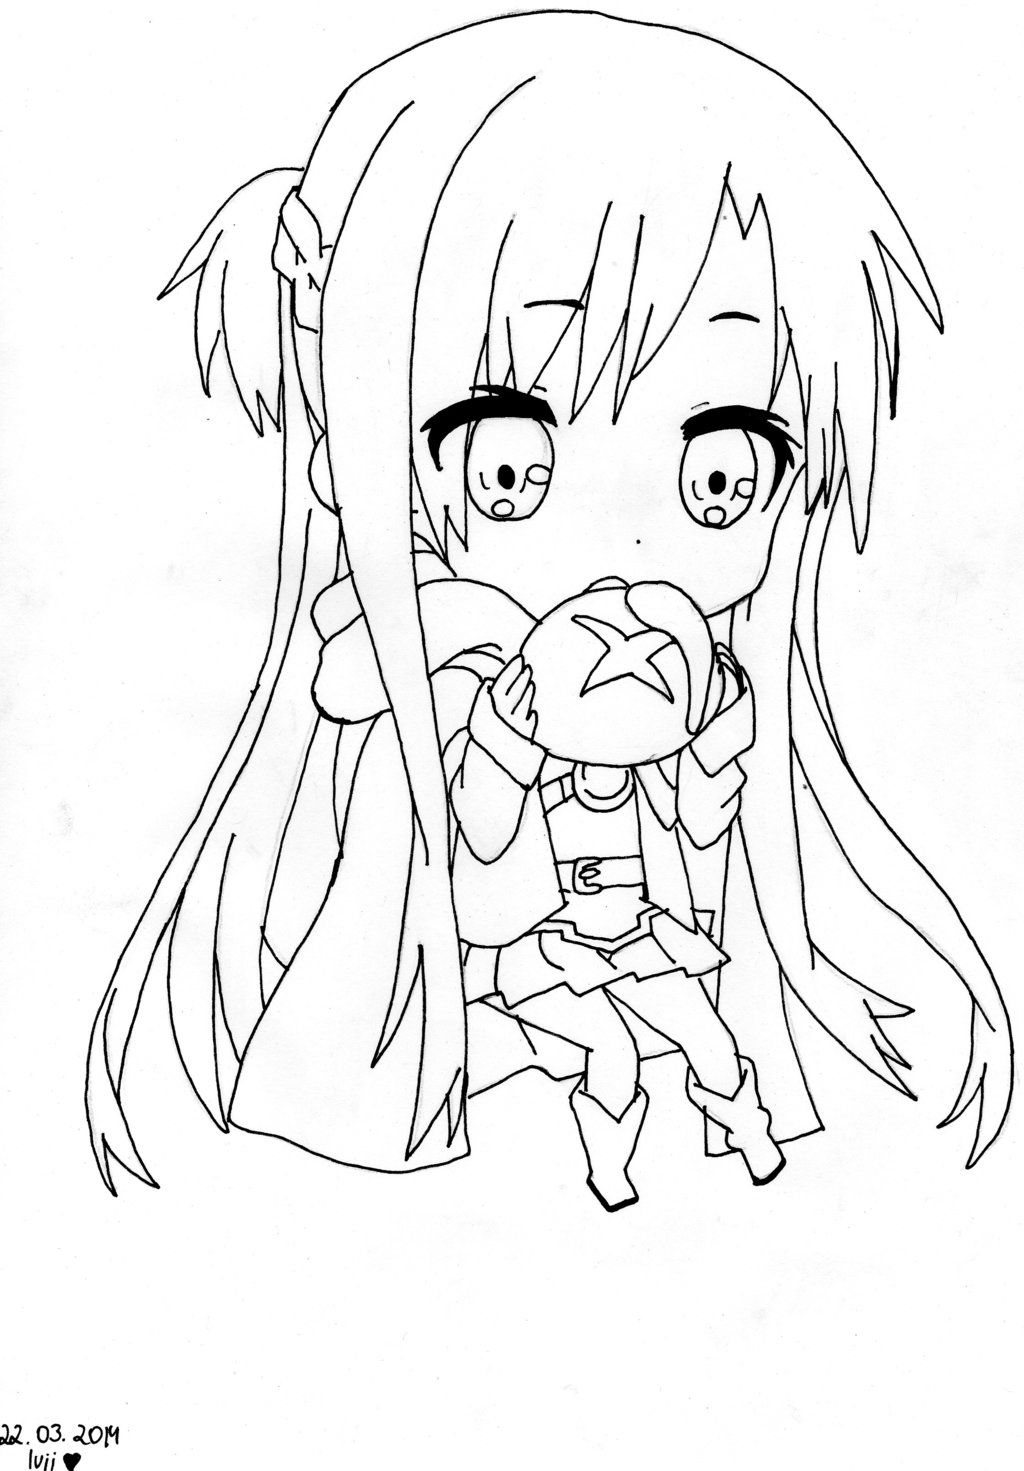 Asuna Coloring Pages - Line Art Transparent PNG - 900x786 - Free ... | 1471x1024